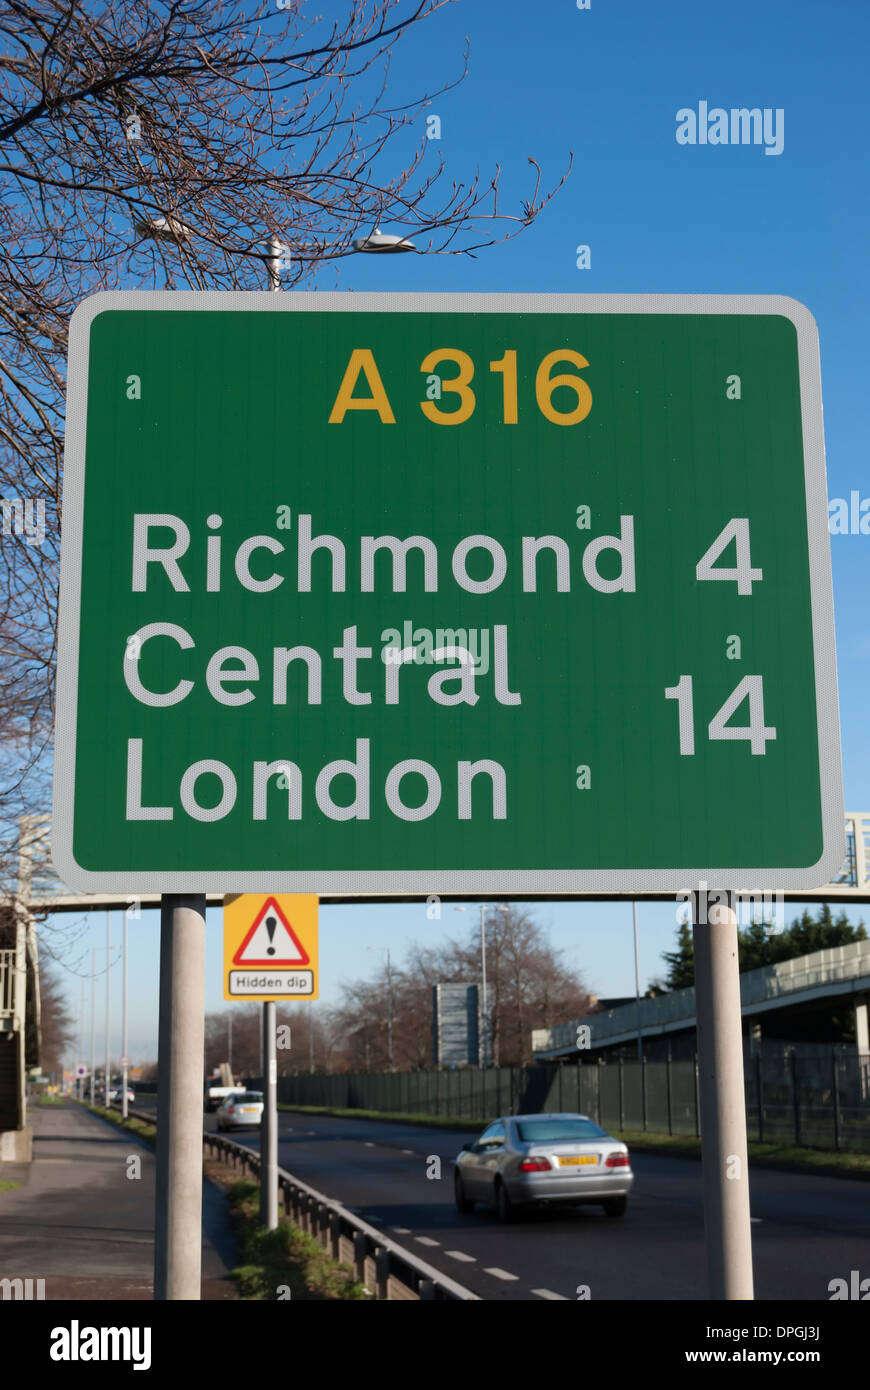 british road sign on the a316 giving distances to richmond and central london - Stock Image